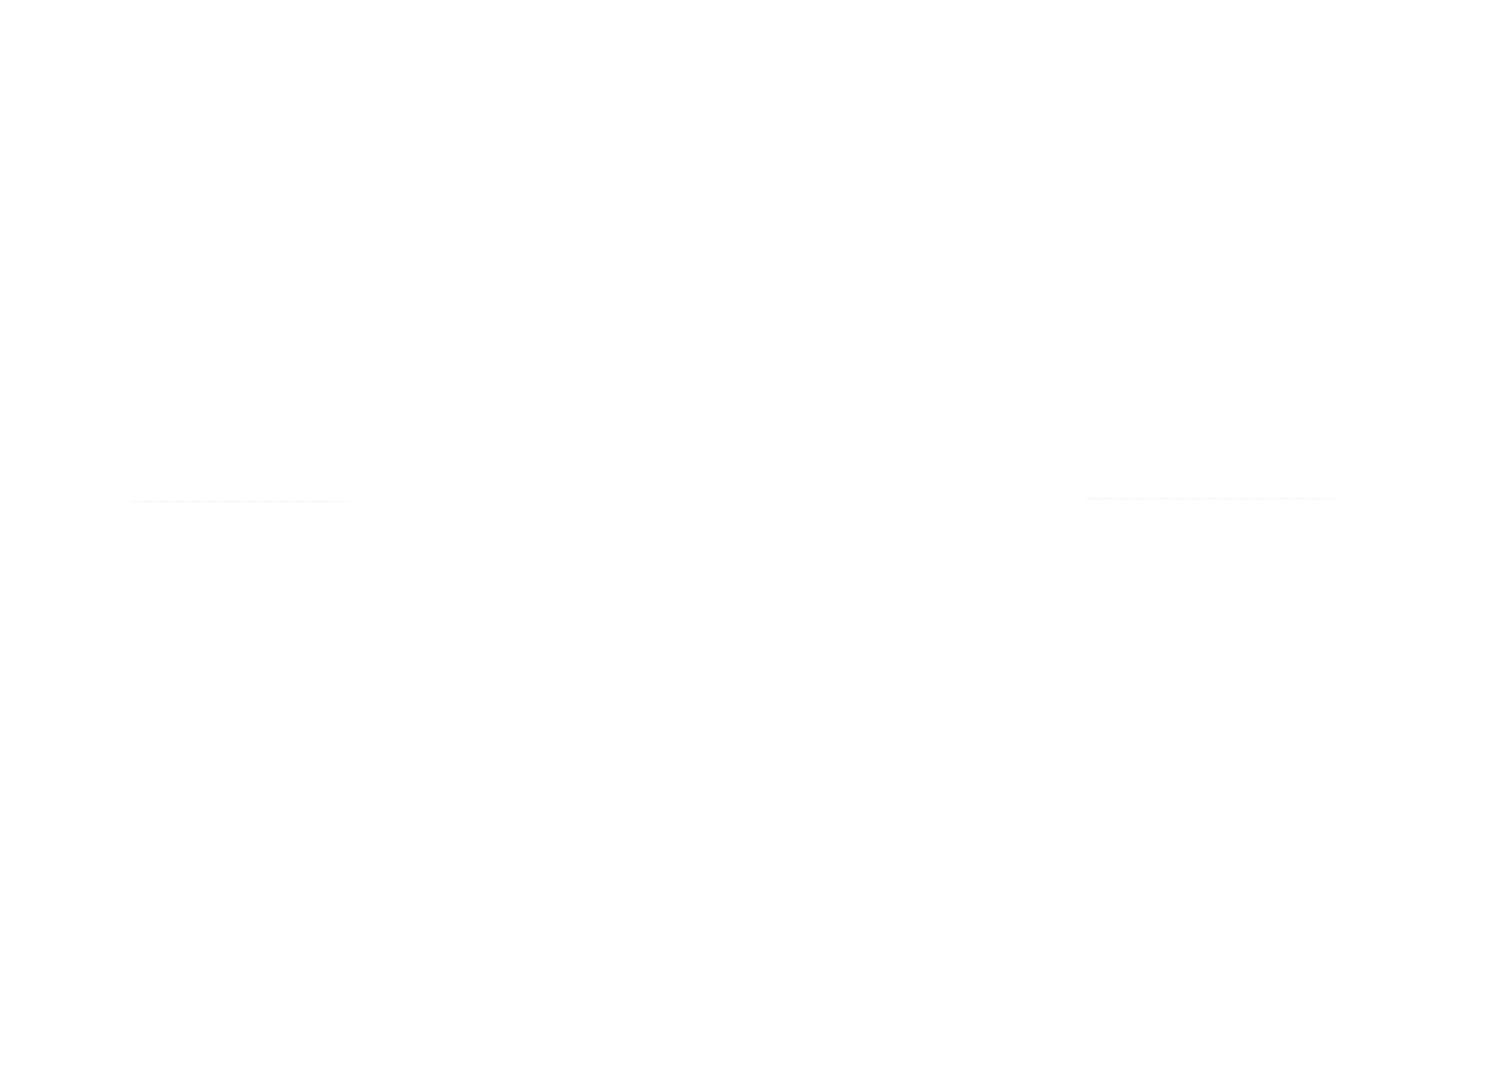 Diaz wedding films